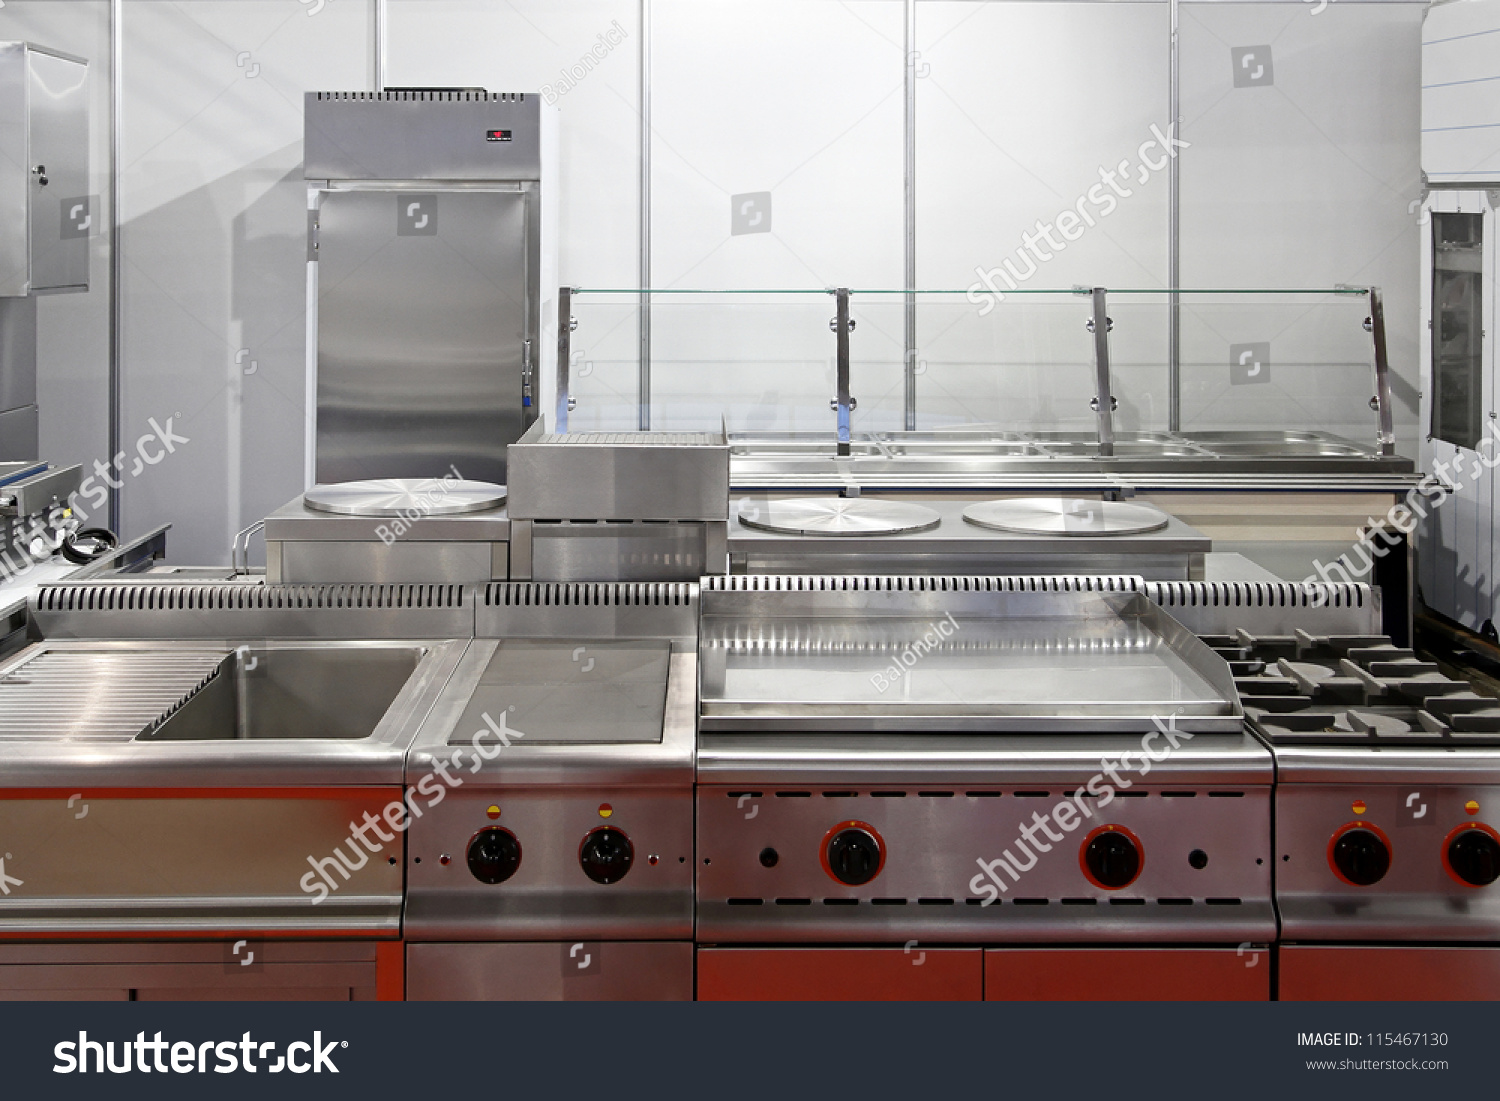 Restaurant Kitchen Gas Stove interior restaurant kitchen stainless steel equipment stock photo